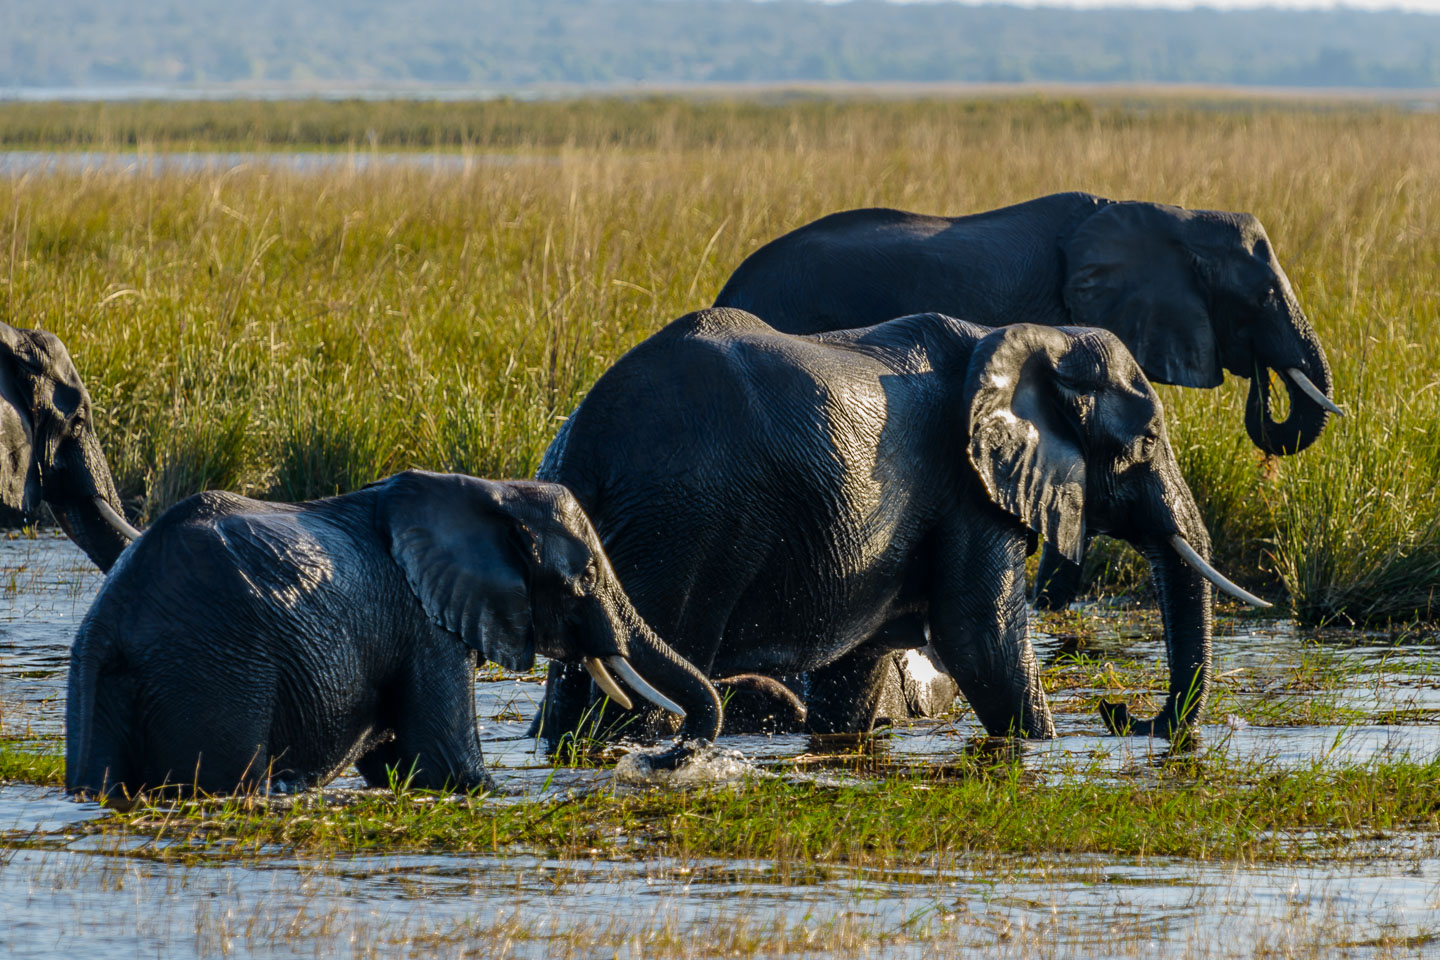 ZA131728-Elephants-emerging-from-the-Chobe-river-after-a-swim.jpg